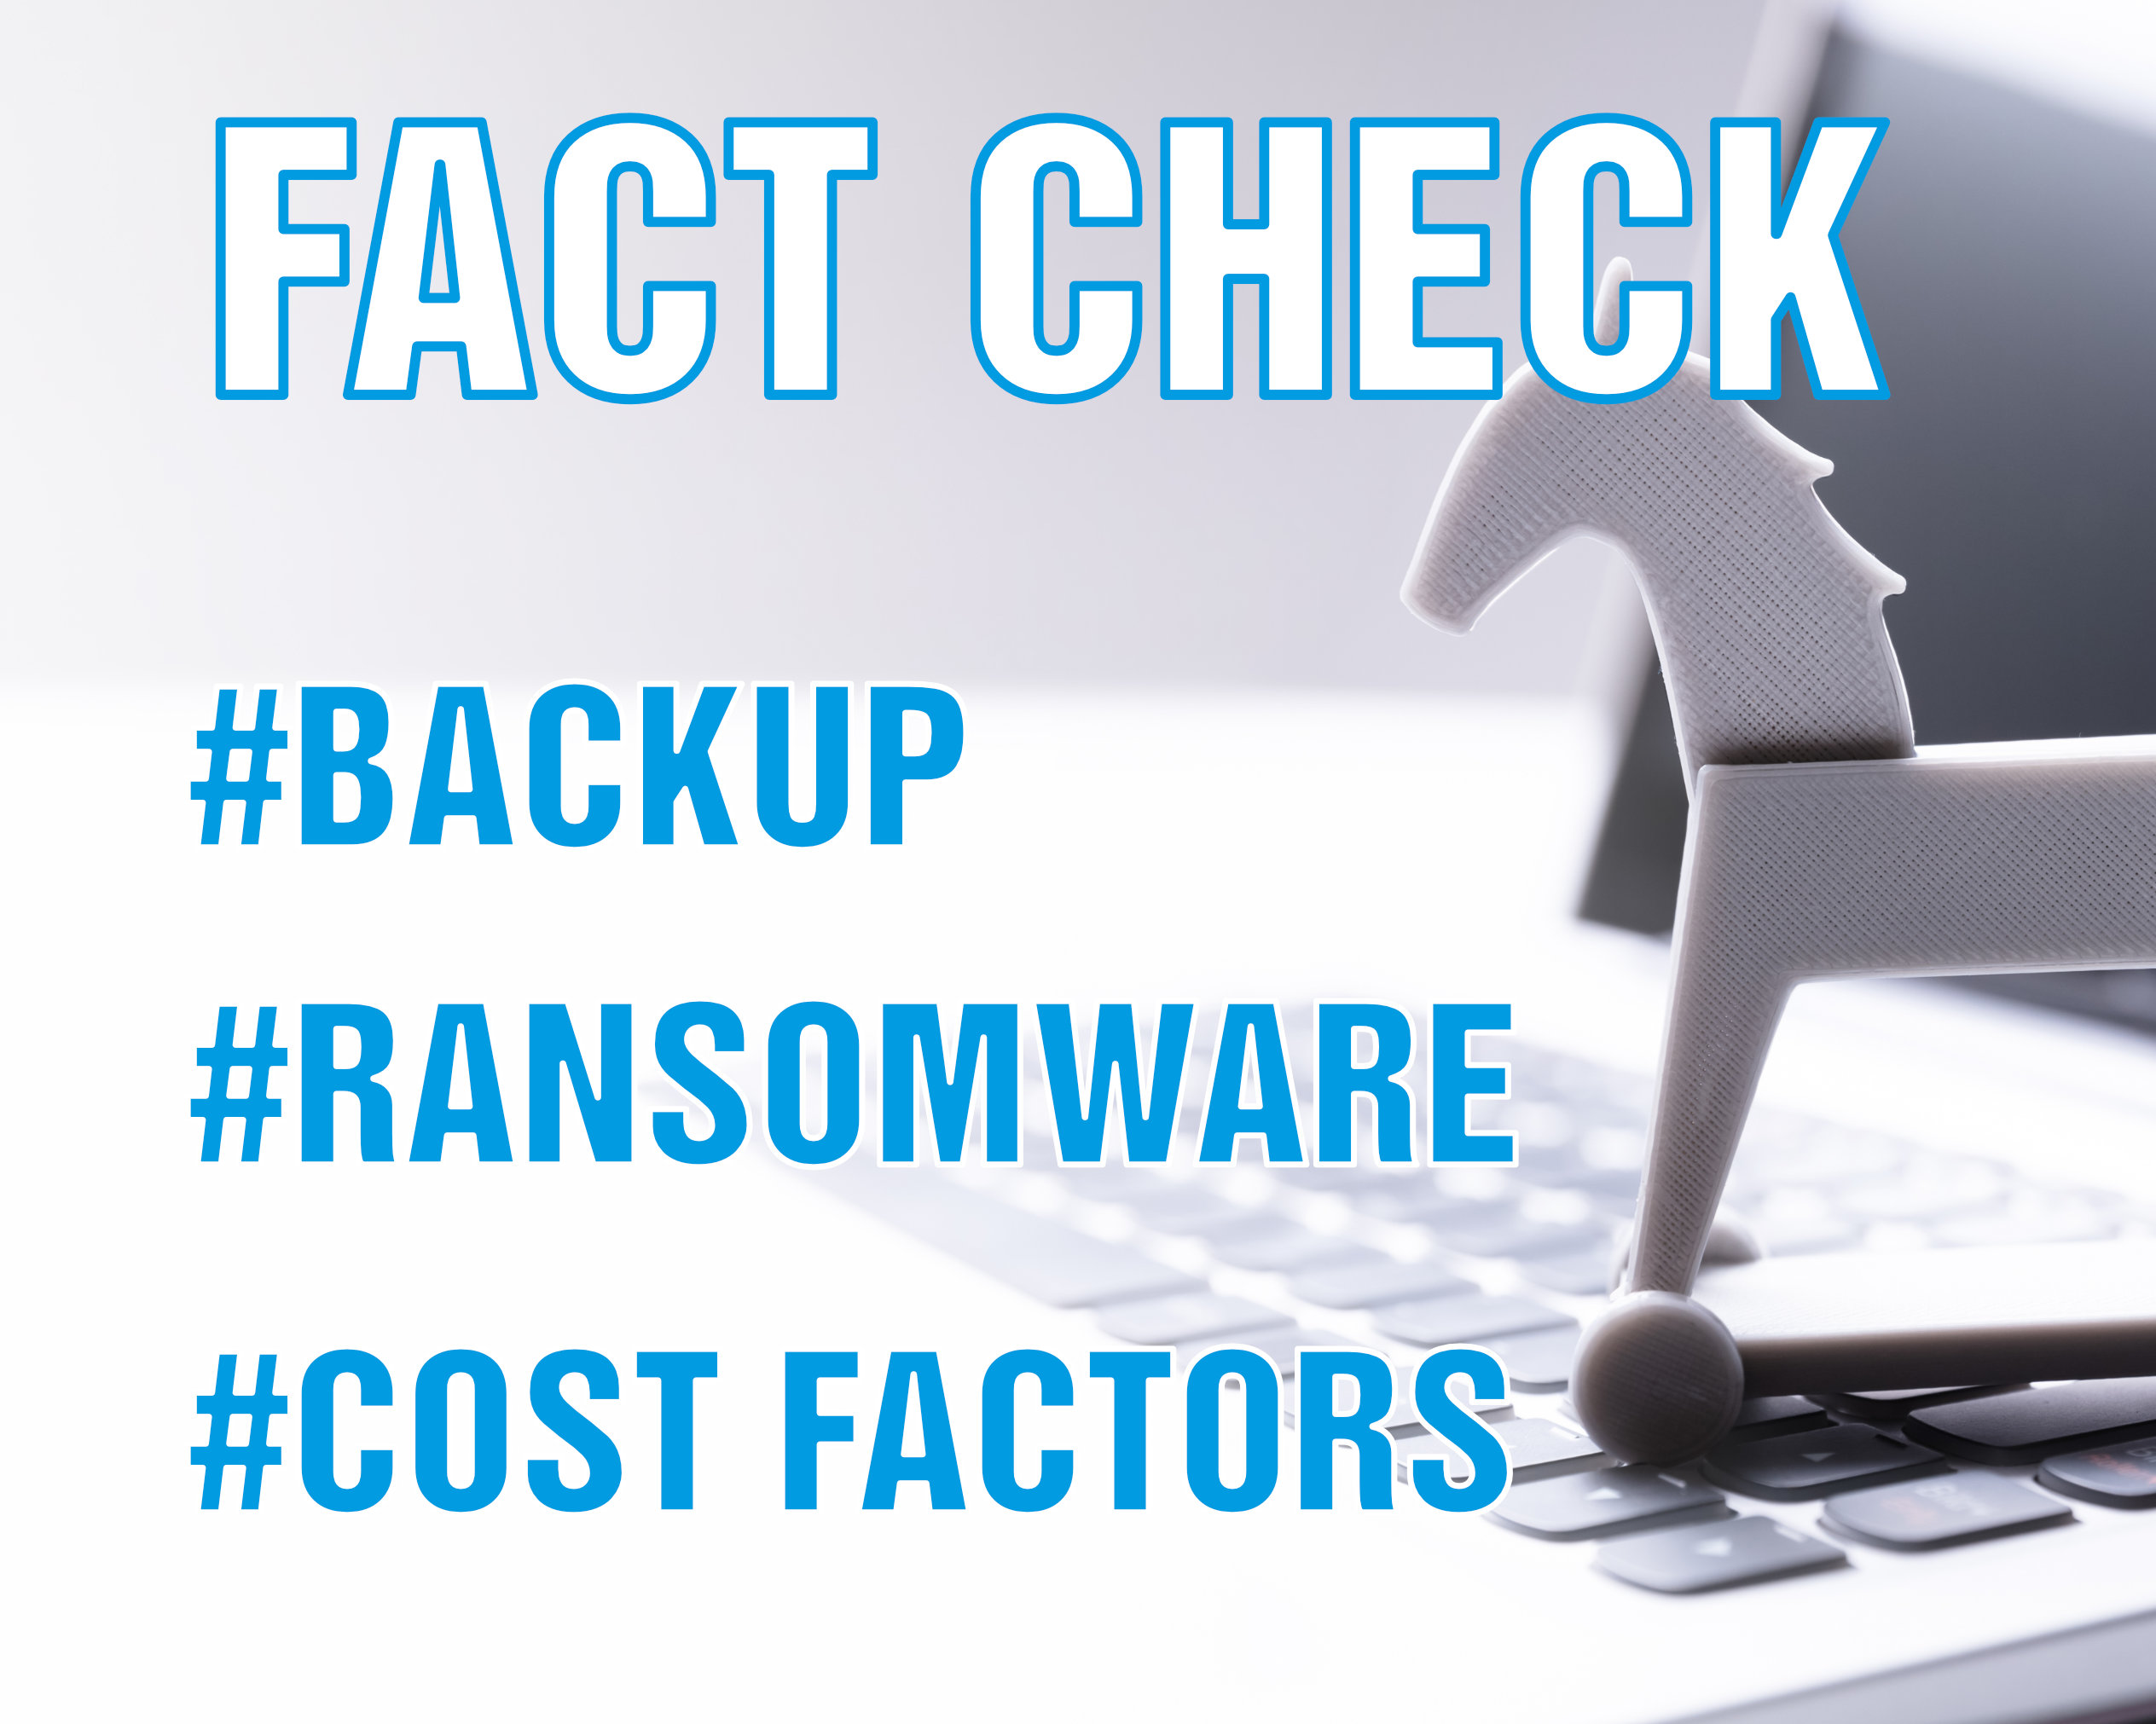 Toy horse on keyboard, keywords Backup, Ransomware and Cost Factors